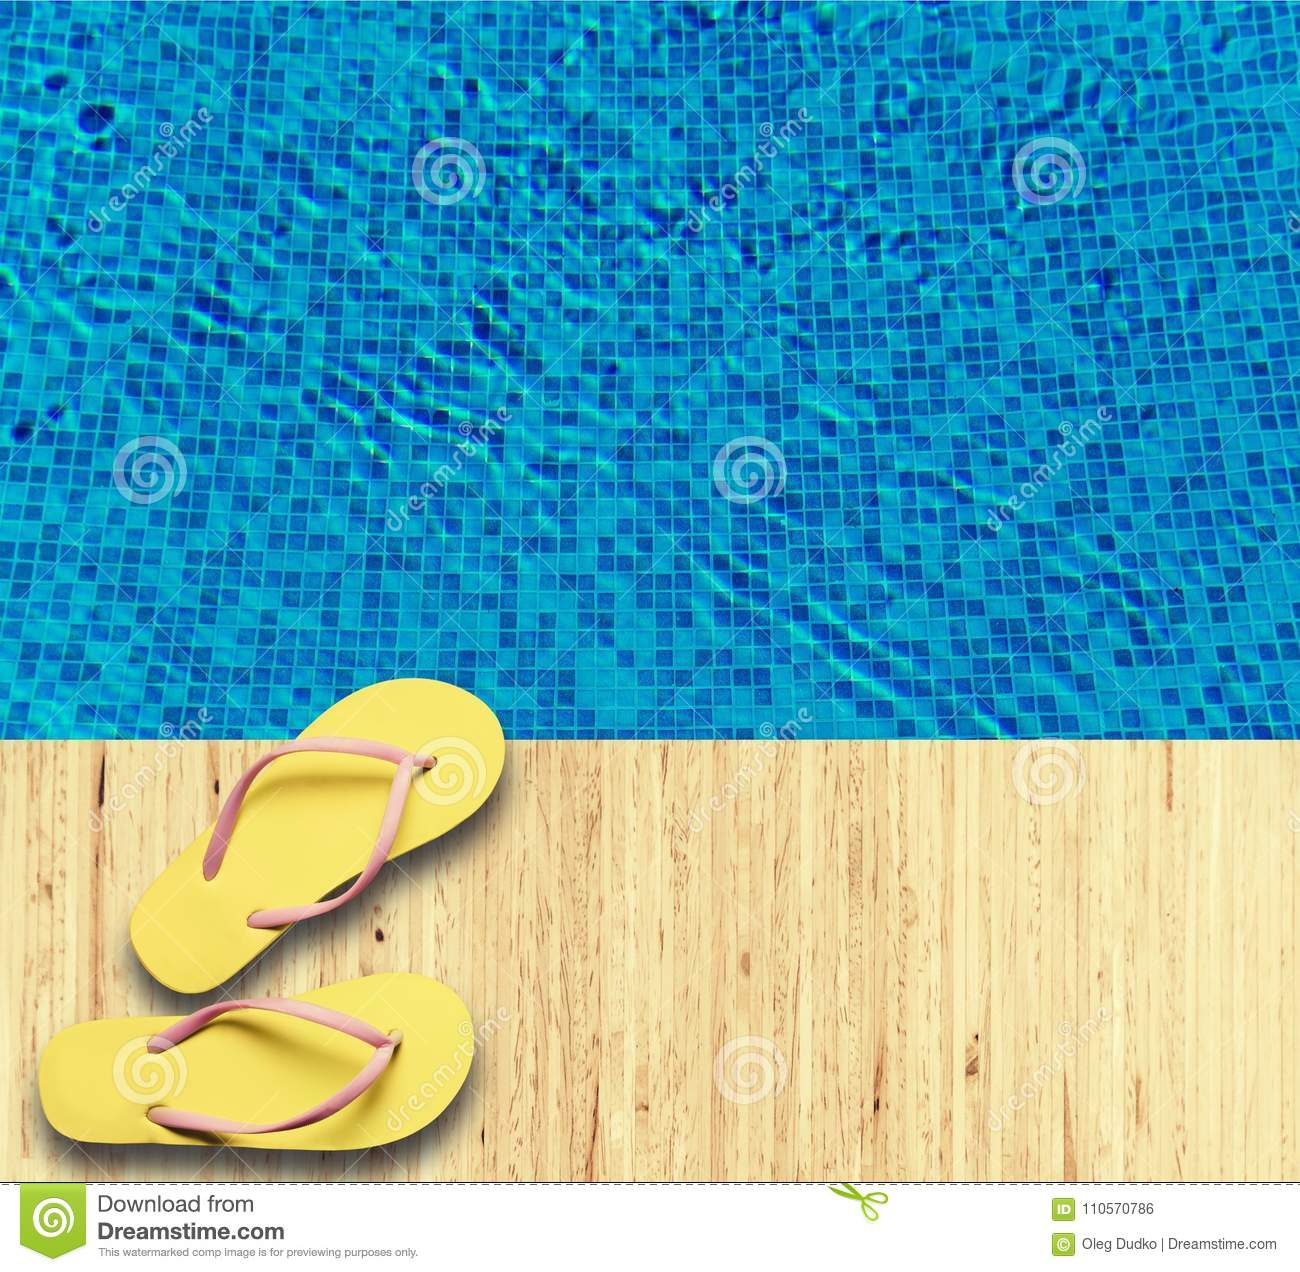 05bc4f22add465 Rubber Sandals Flip Flops Near Swimming Pool Stock Photo - Image of ...